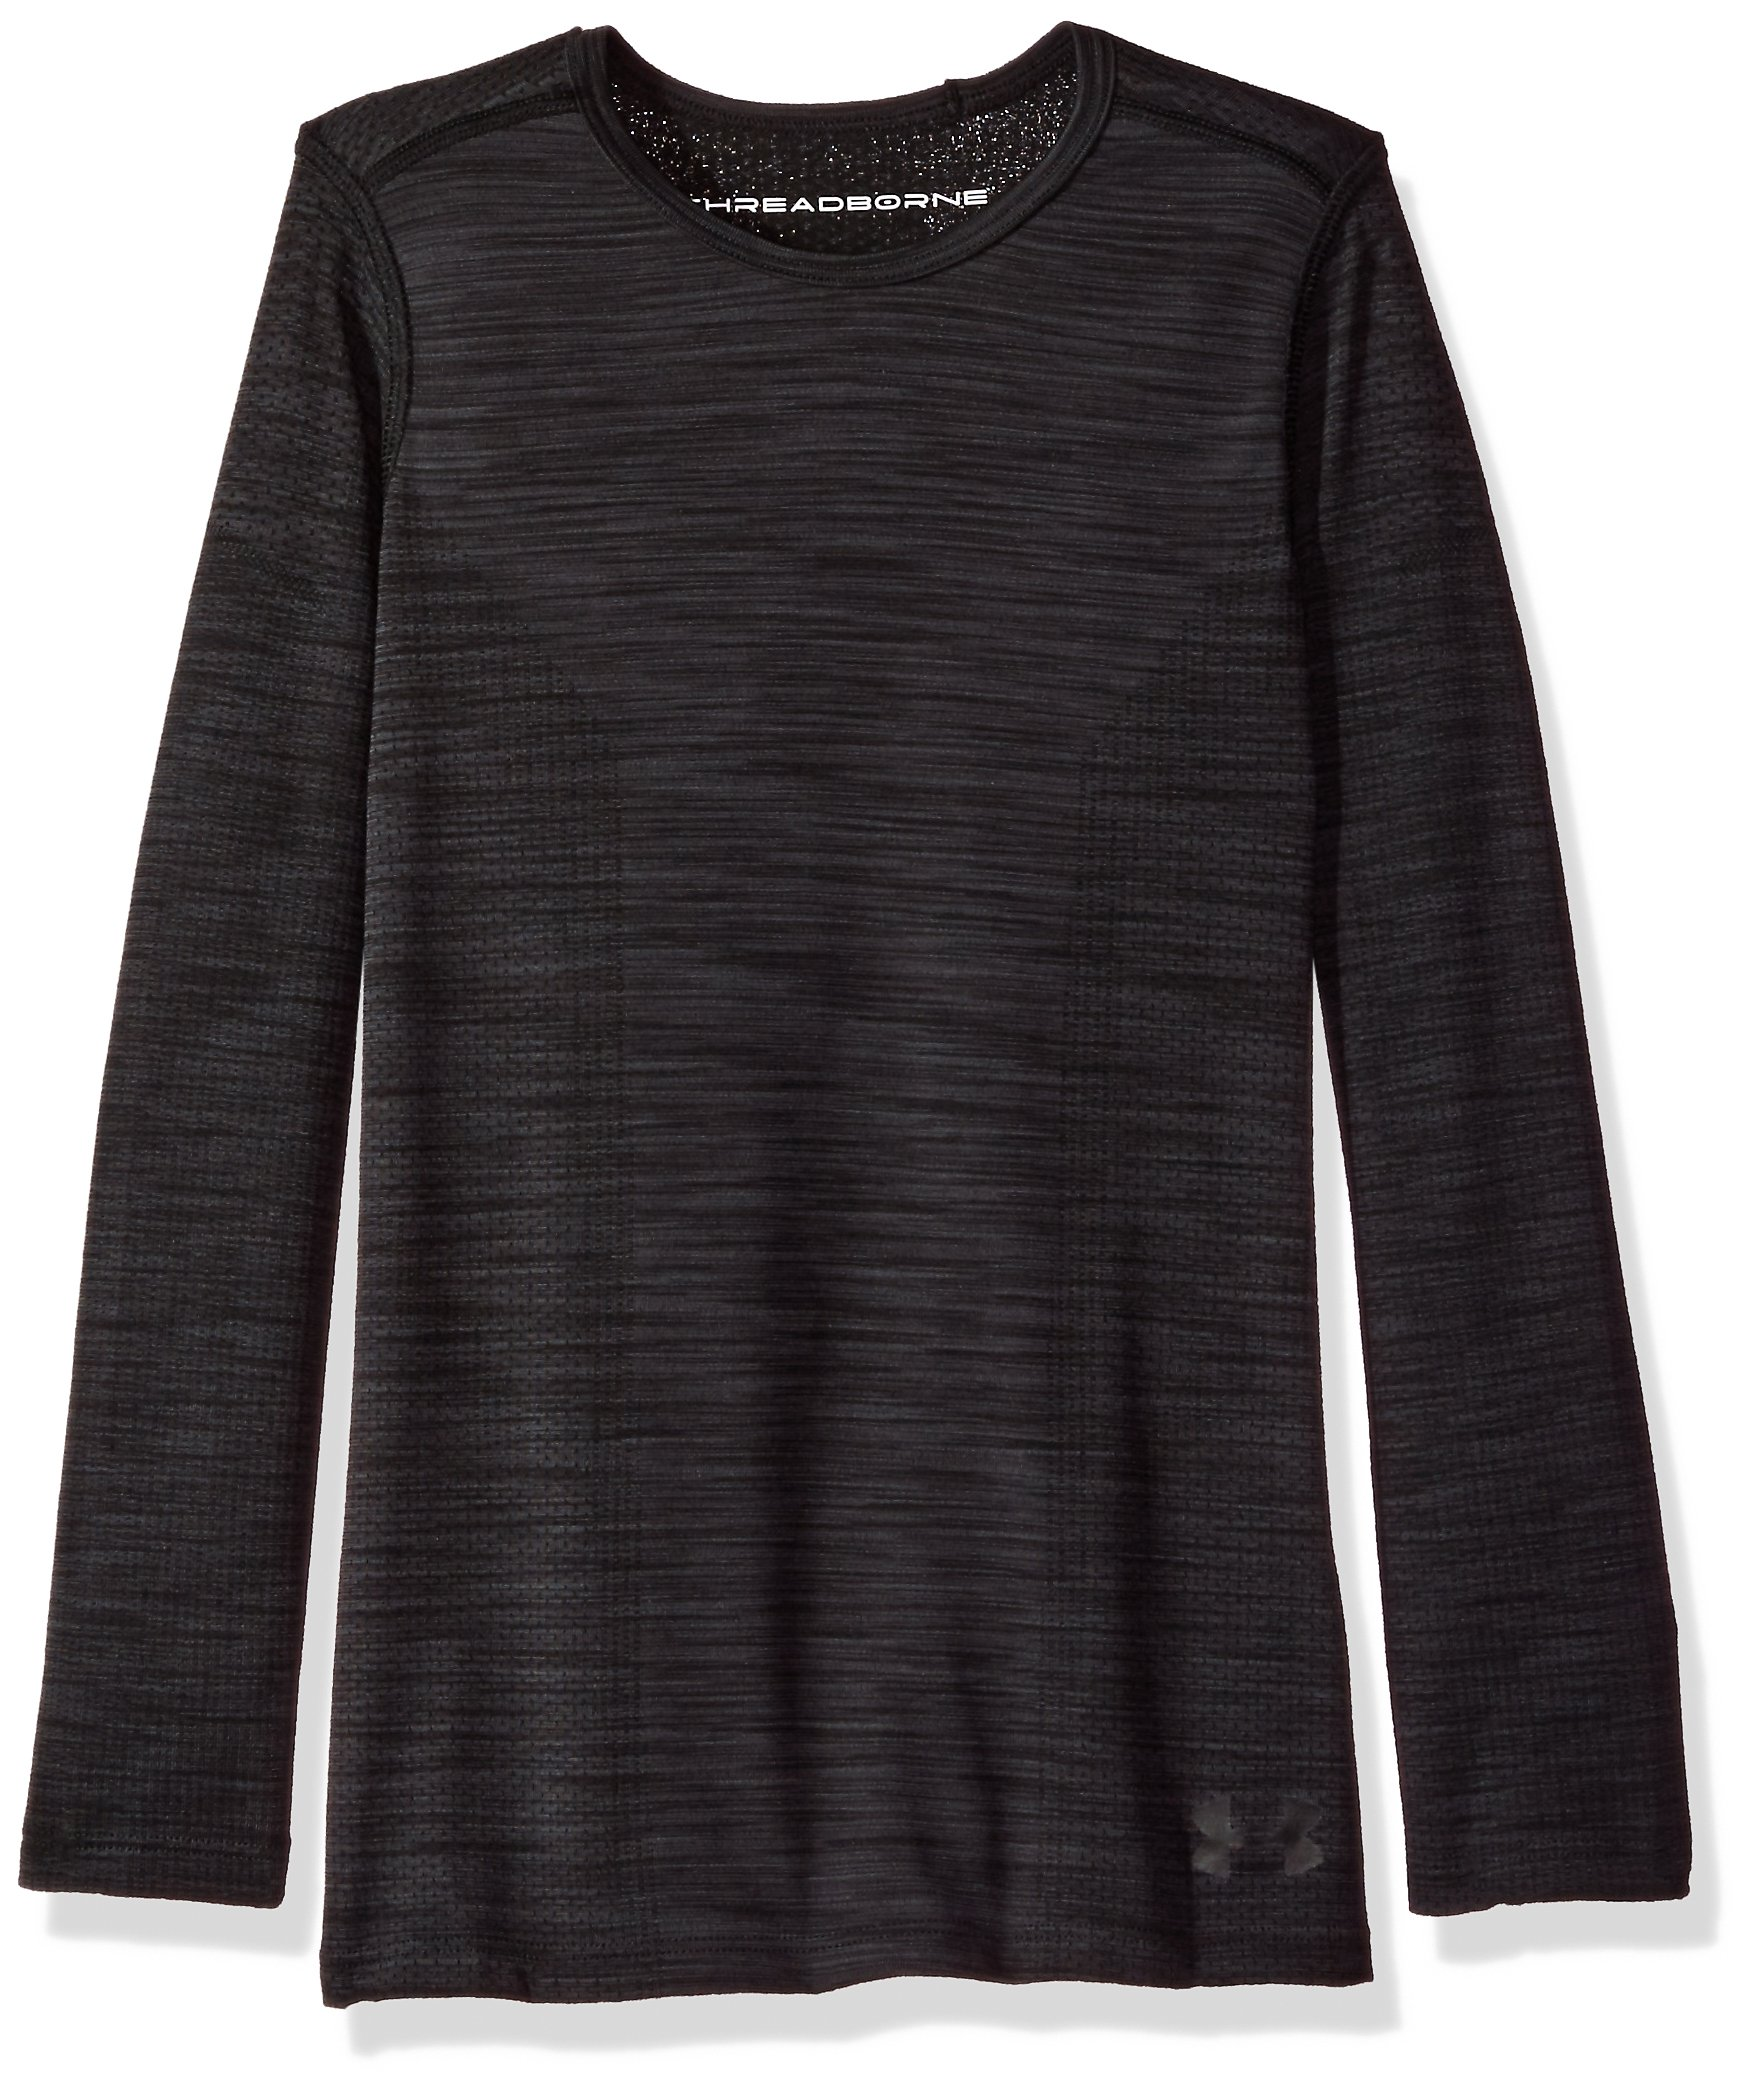 Under Armour Girls' Elevated Seamless Long Sleeve,Black /Black, Youth X-Small